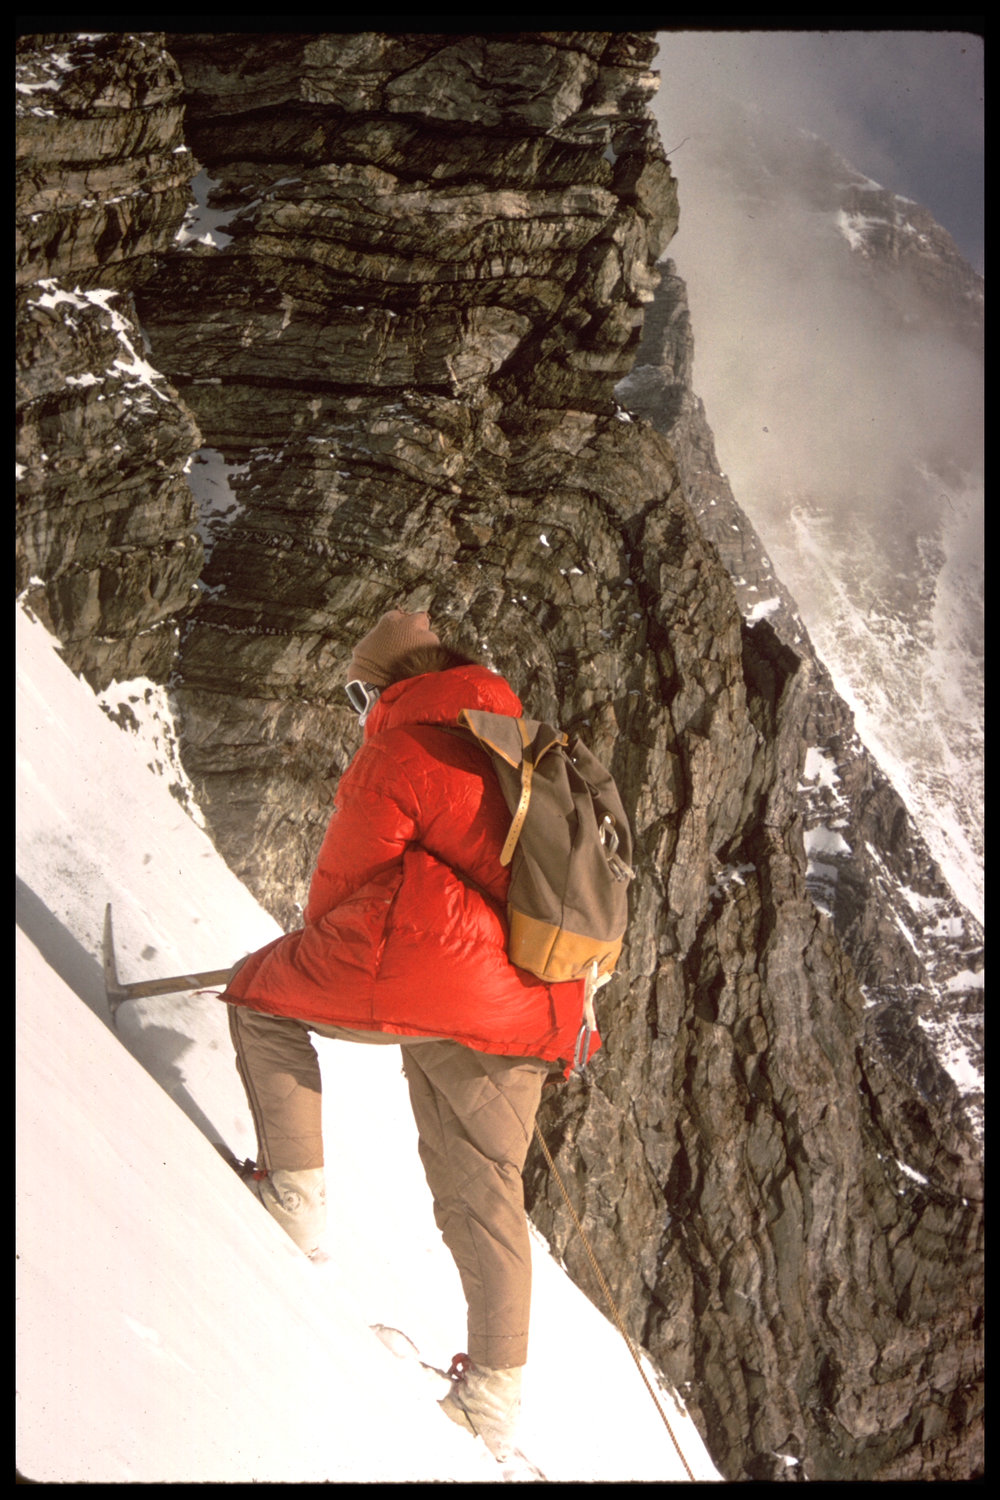 Cutting steps in the snow with an ice axe